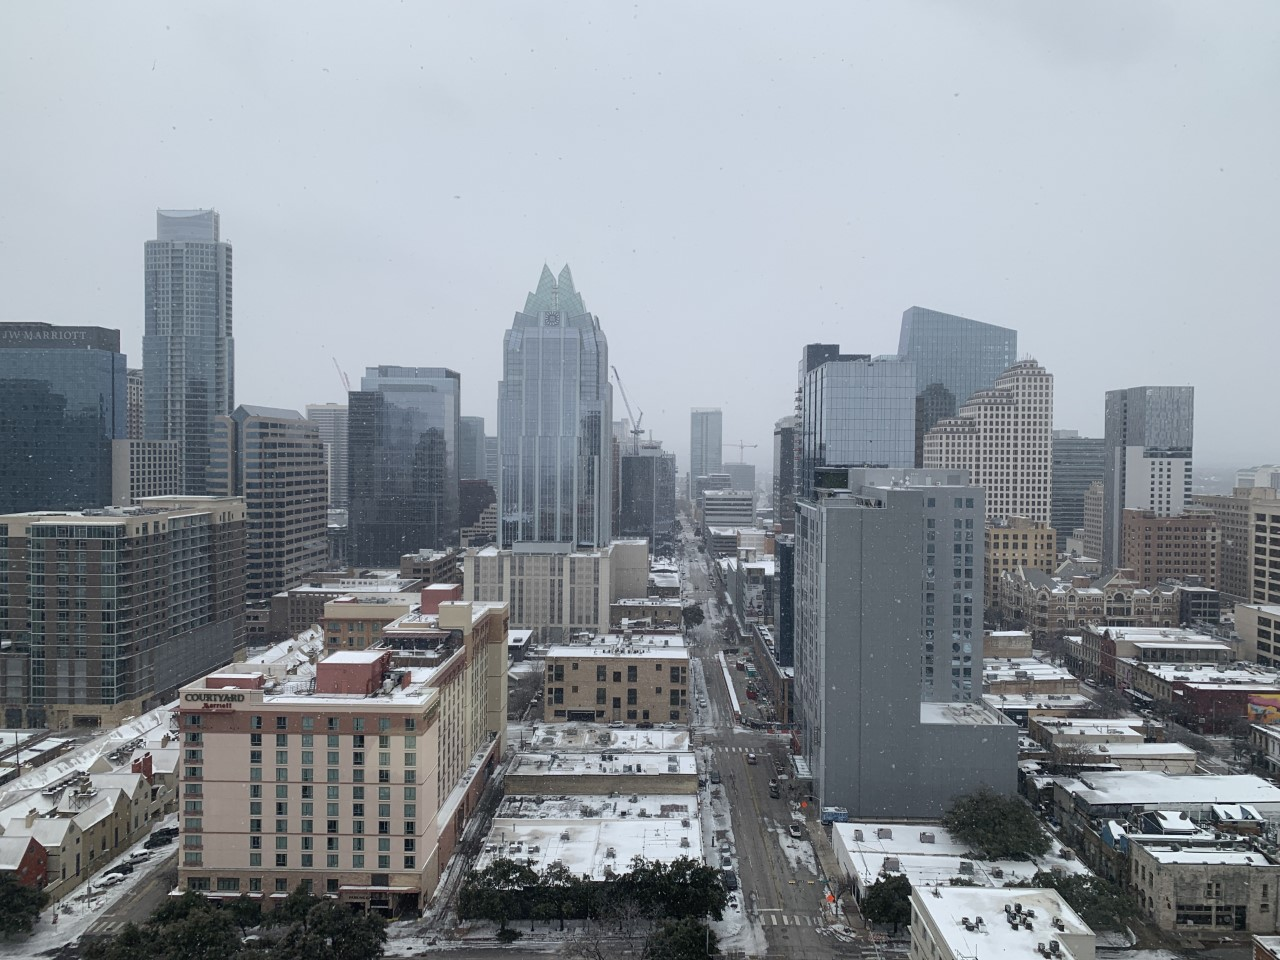 Snow in downtown Austin Feb. 18, 2021 (Courtesy Becky Faulk)